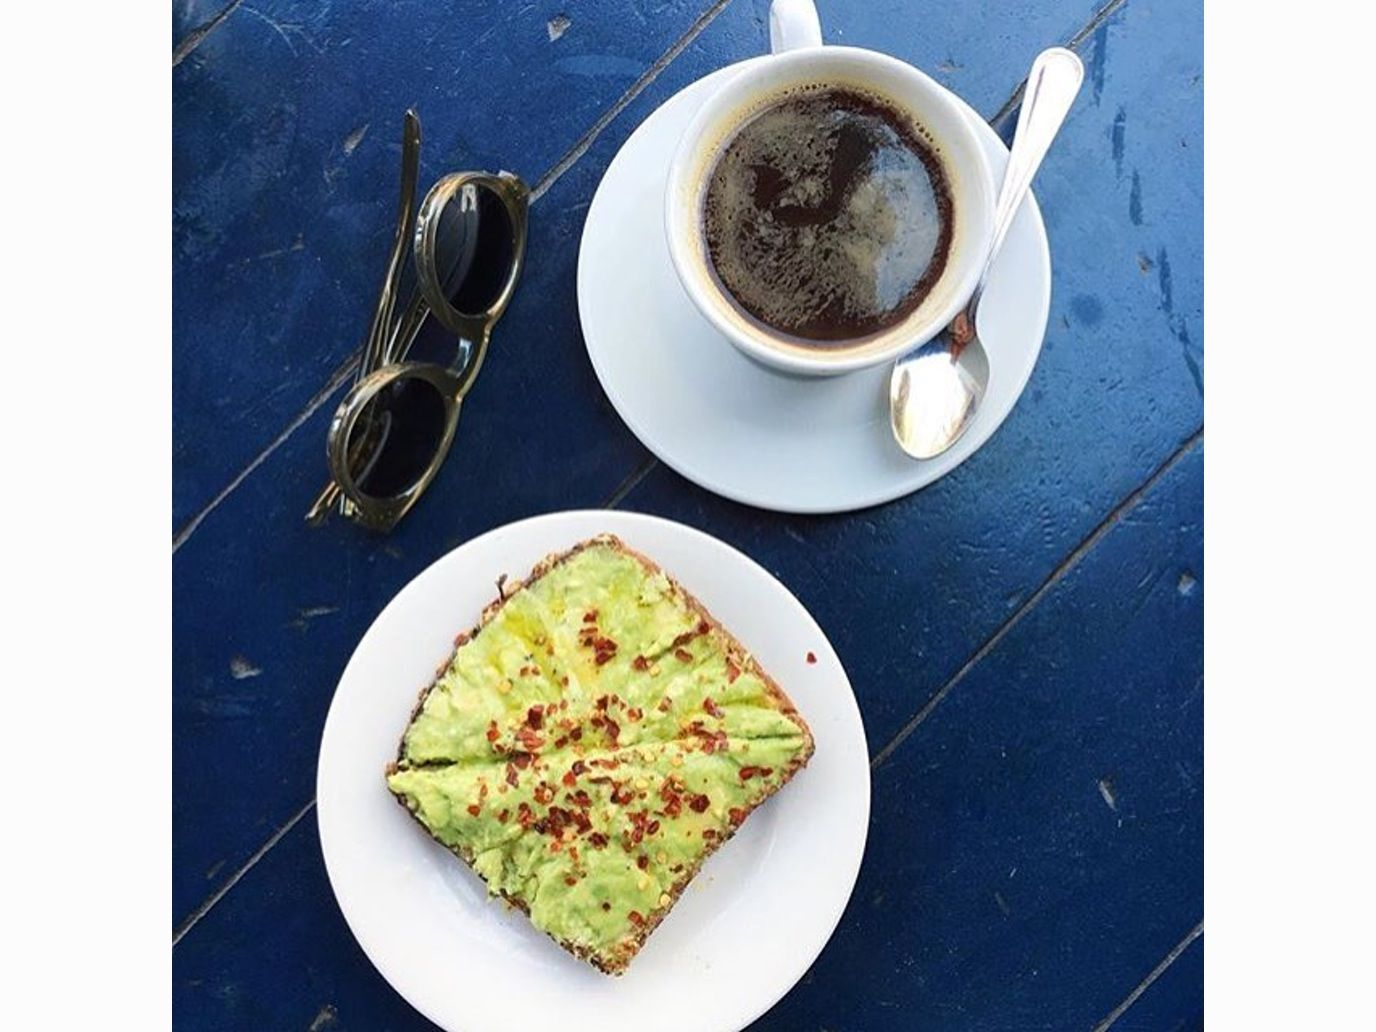 top a slice of seven-grain bread with avo mash, lemon juice, a drizzle of olive oil, and red pepper flakes.